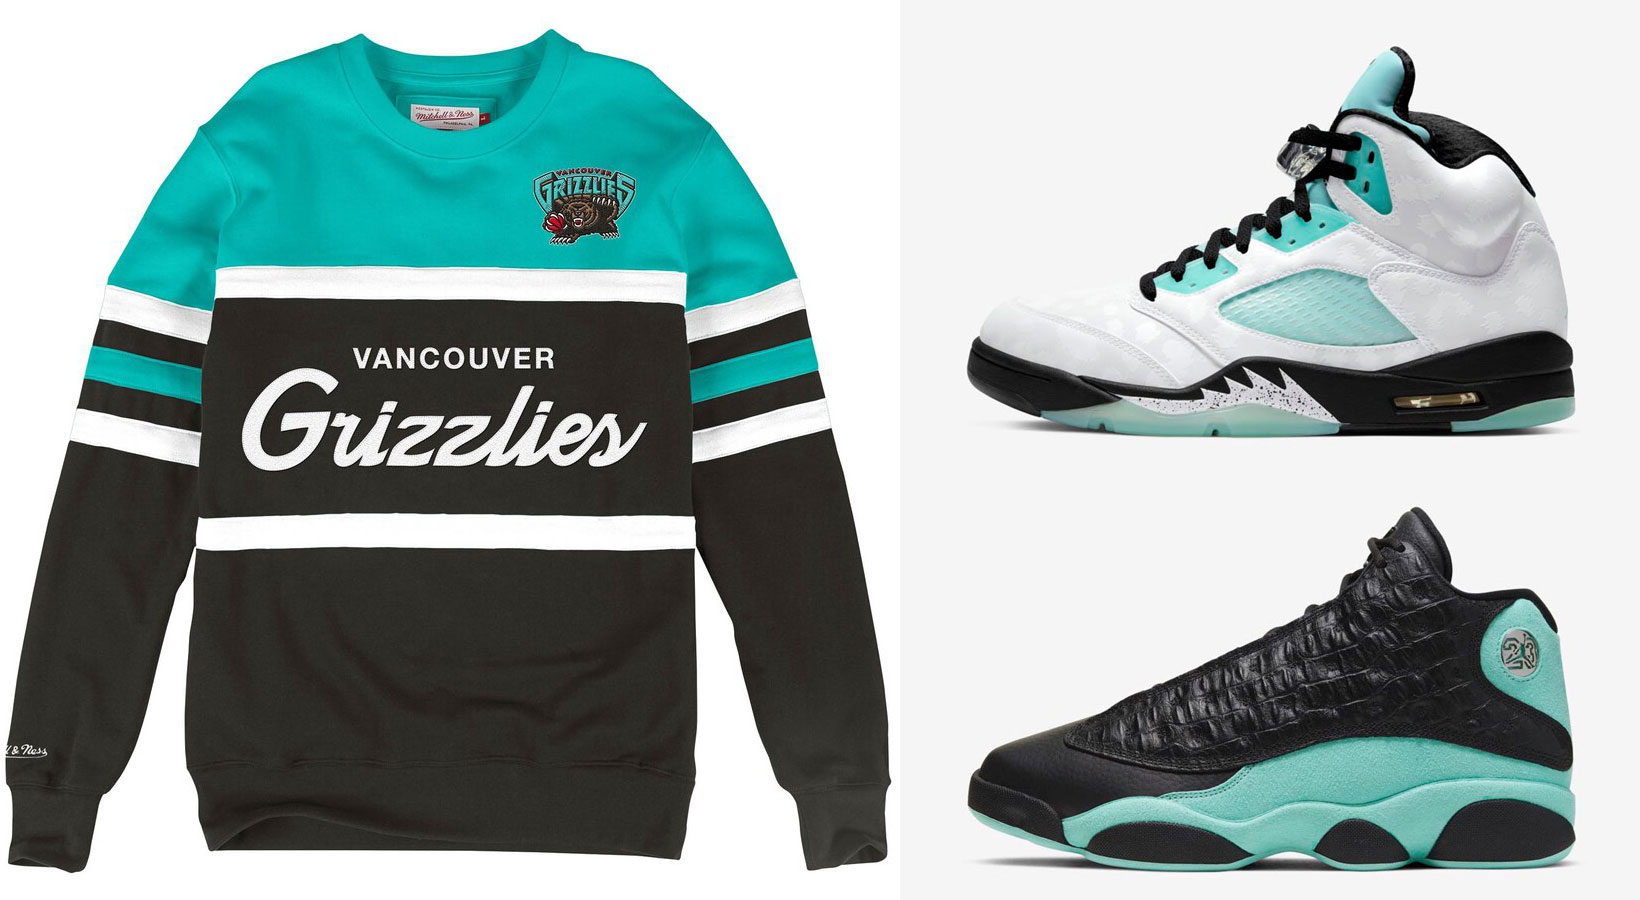 island-green-jordan-retro-nba-grizzlies-sweater-match